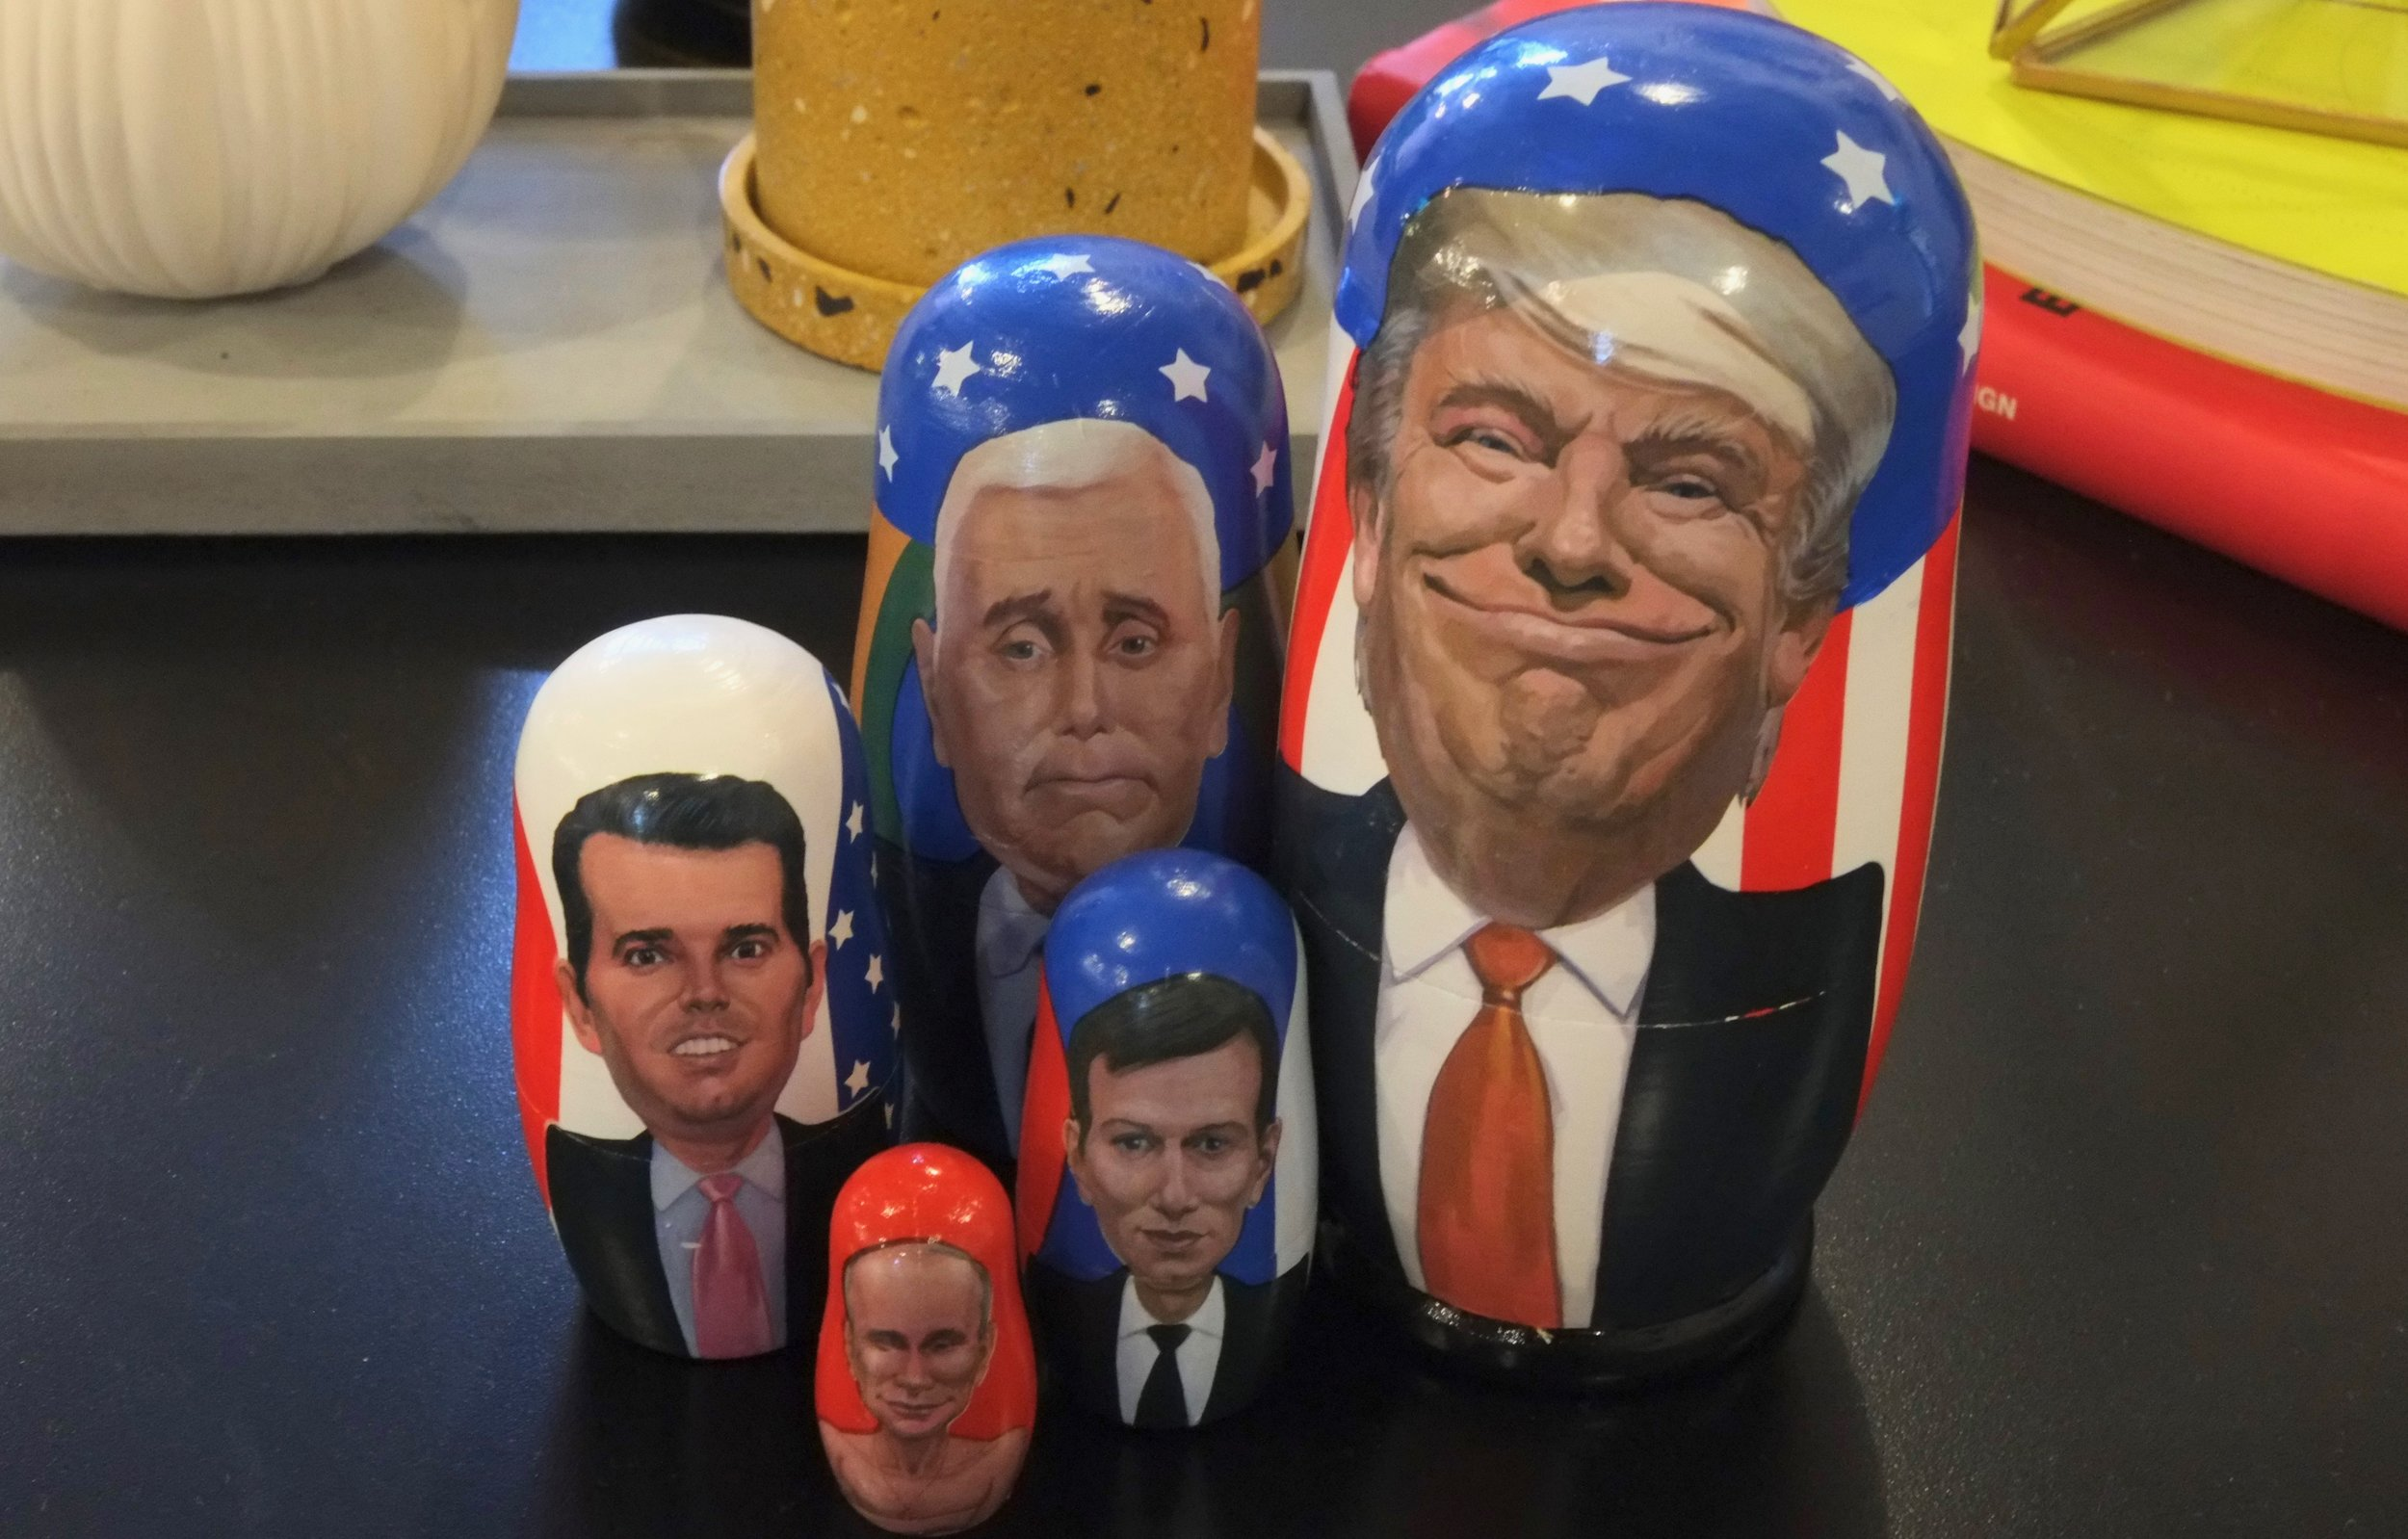 Trump, Pence, Donald Jr., Kushner, and Putin all happy in one set.